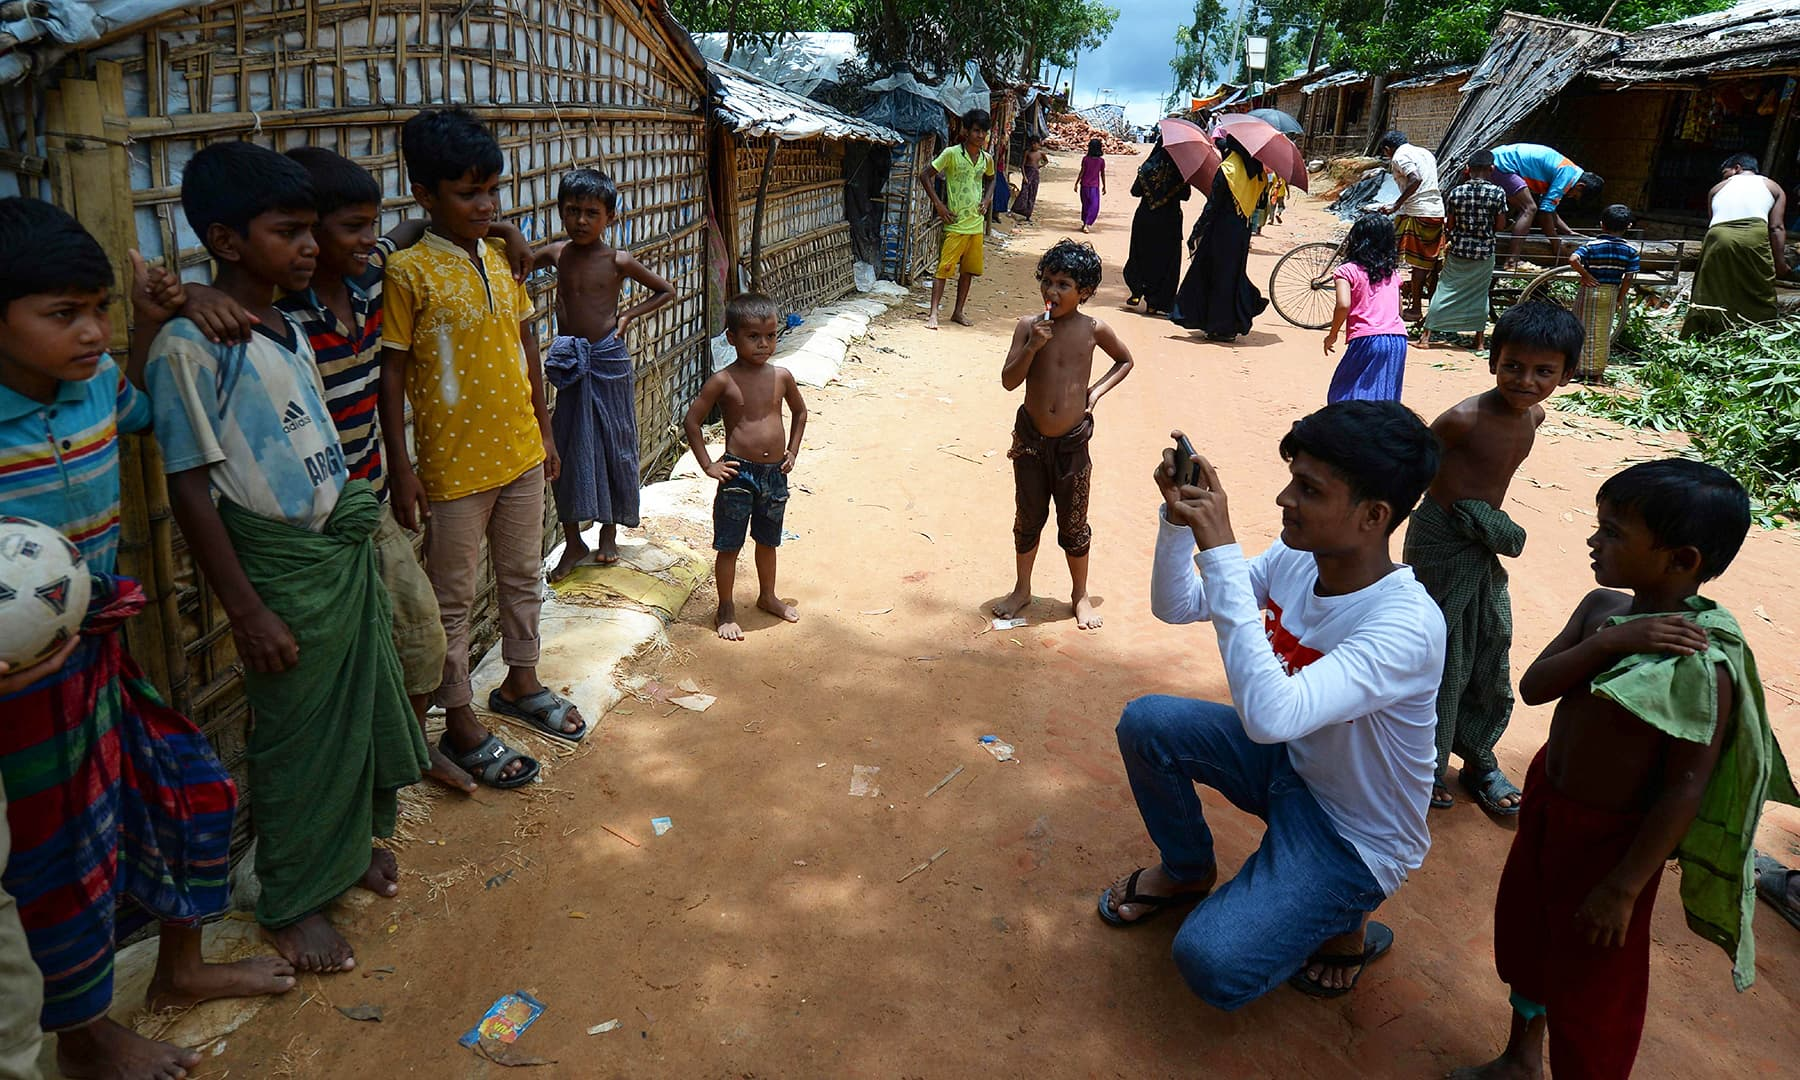 Rohingya youth Mohammad Rafiq (2nd R, in white) uses his mobile phone to take photos of children at the Kutupalong refugee camp. — AFP